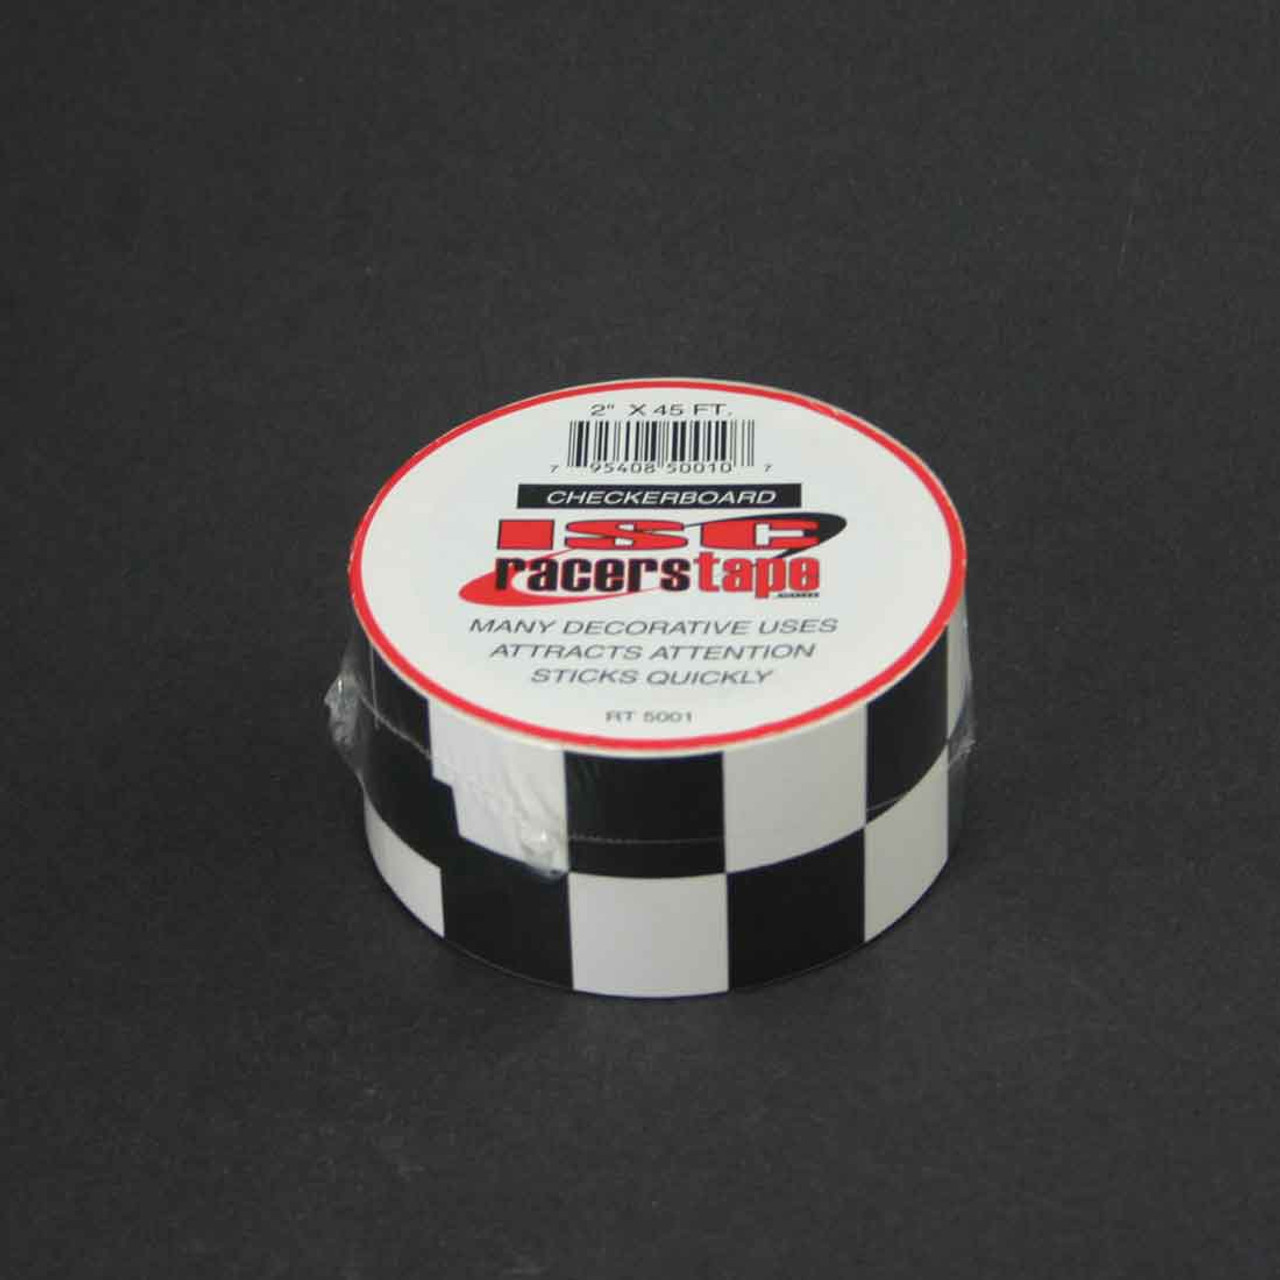 Checkerboard Racers Tape